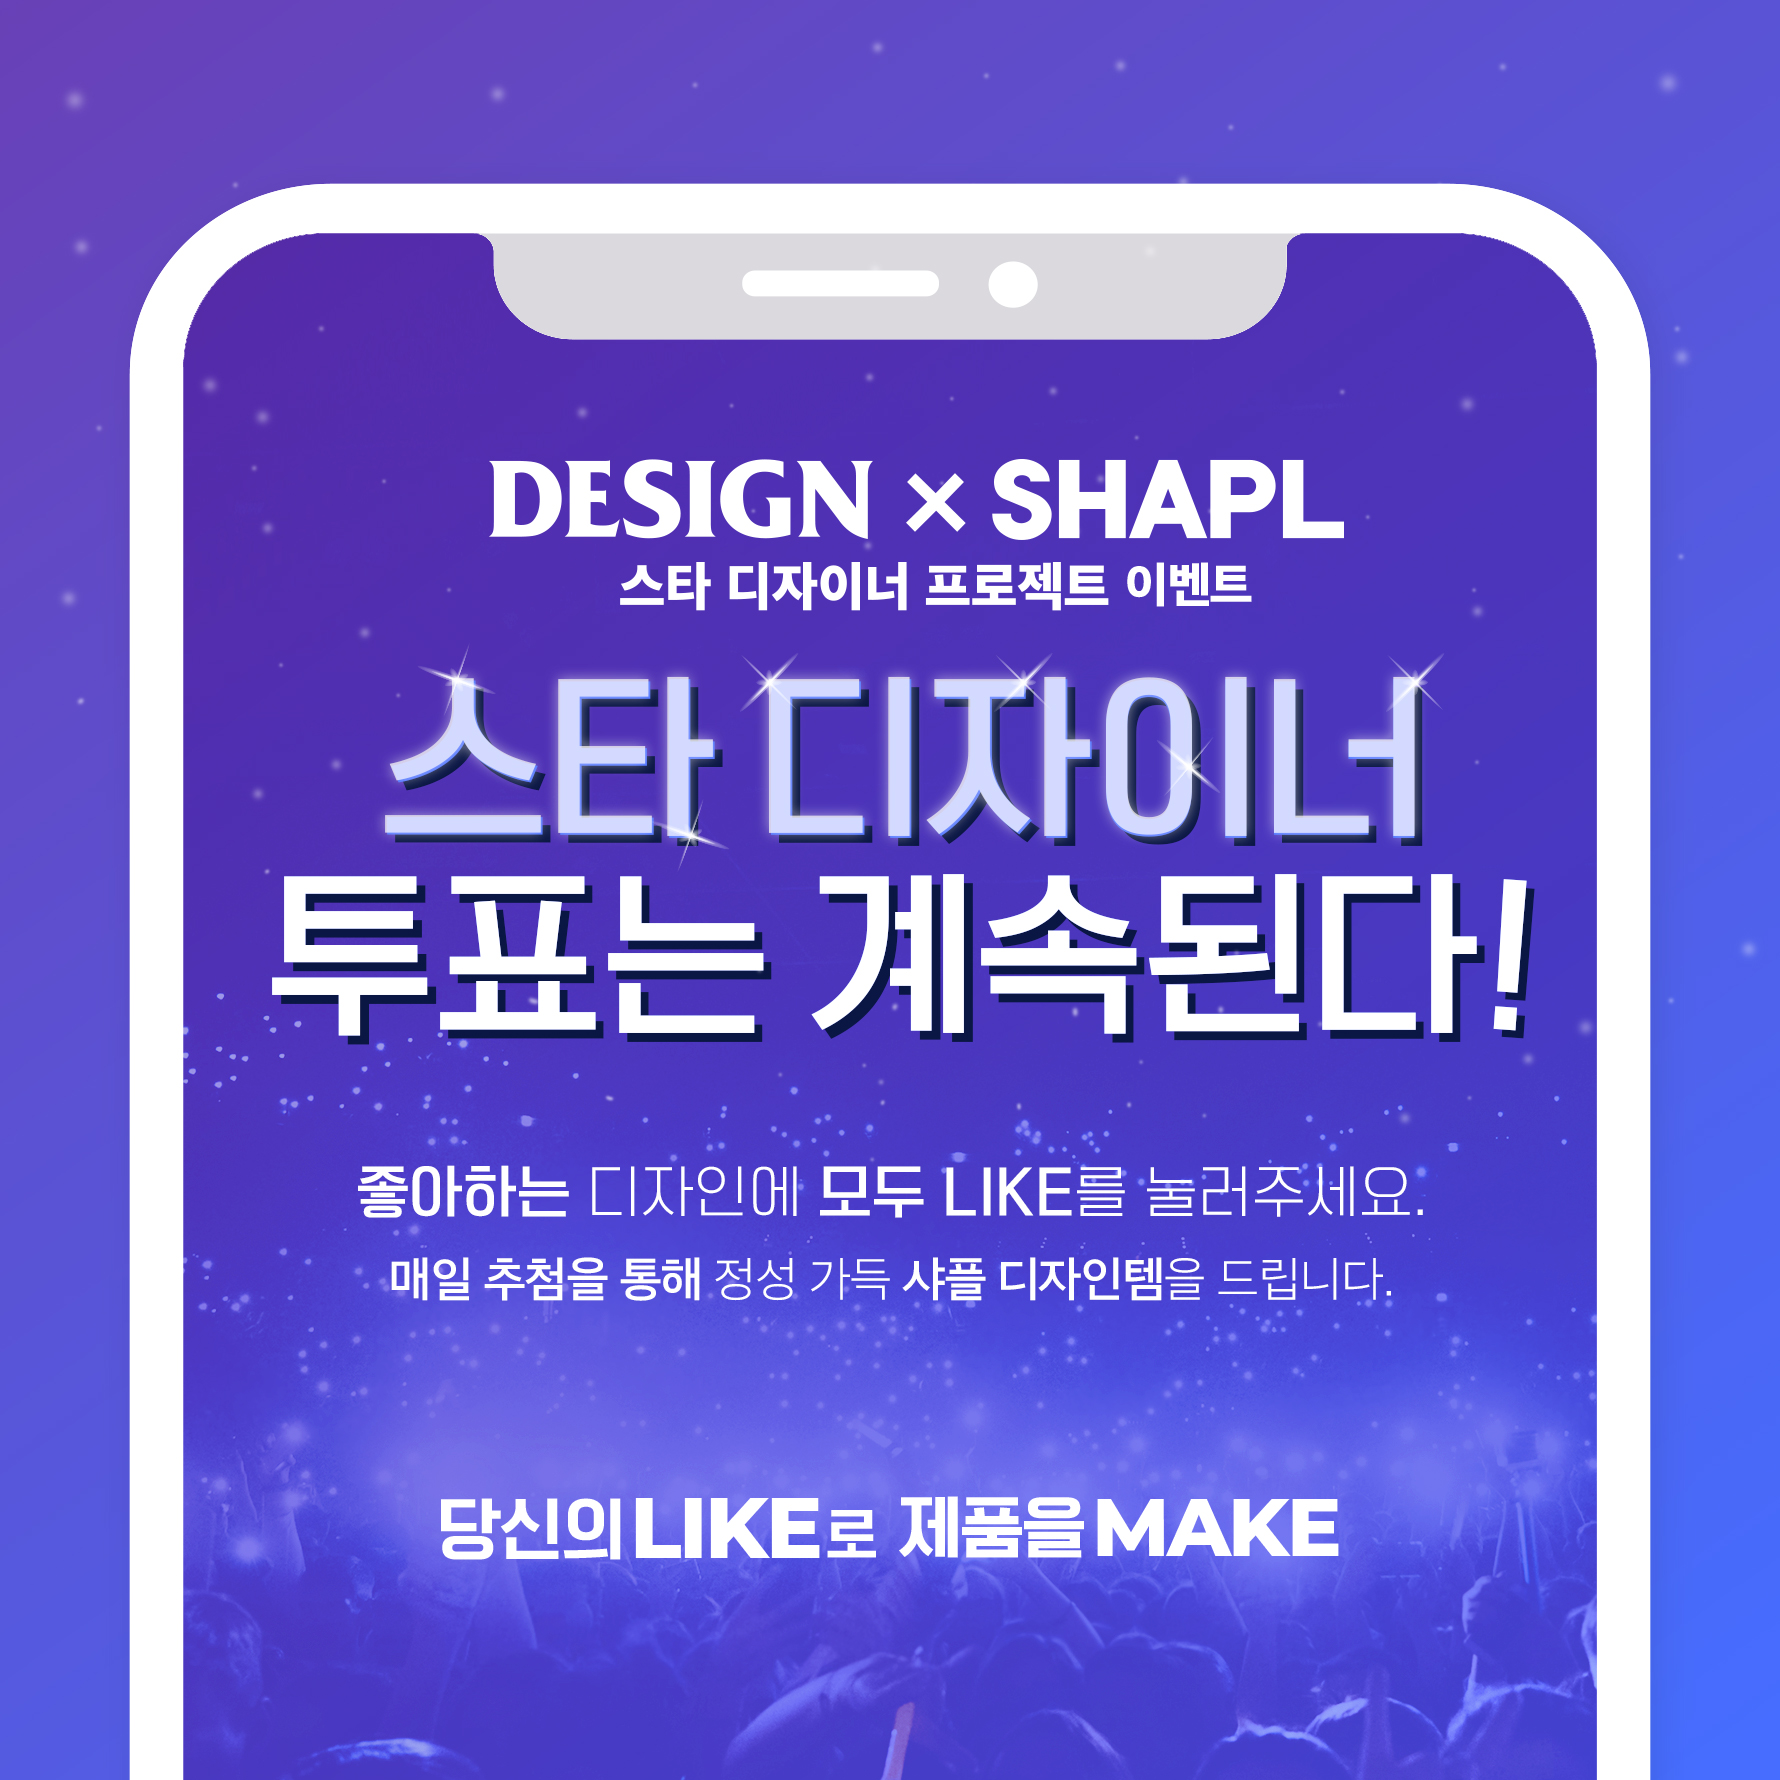 201901/SDF_SHAPL_Stardesign_Voting_181227_최종1.jpg